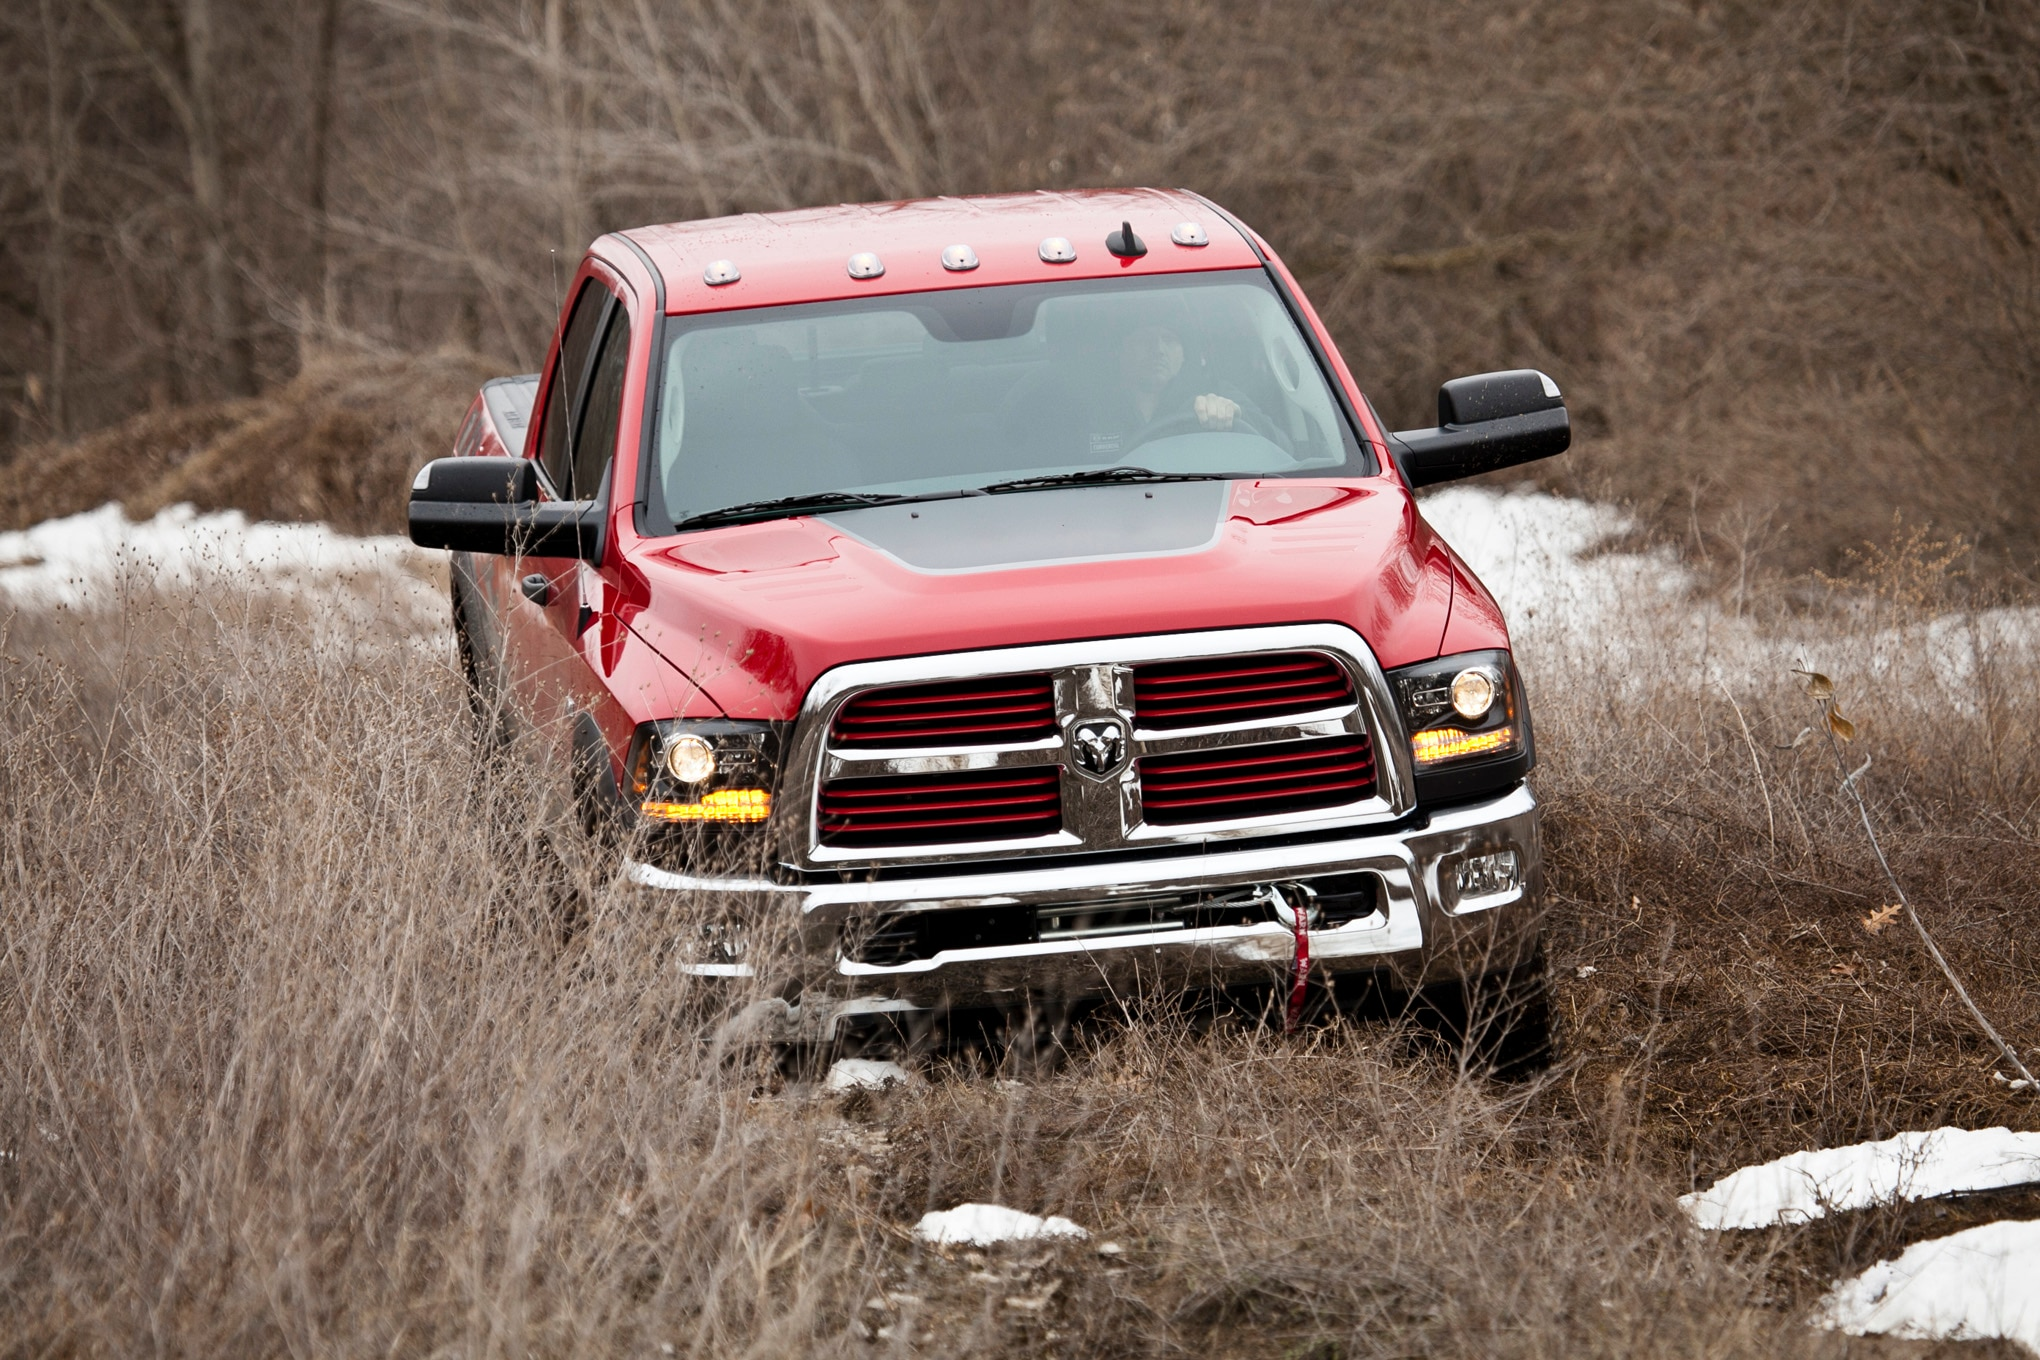 2014 Ram 2500 Power Wagon front end downward